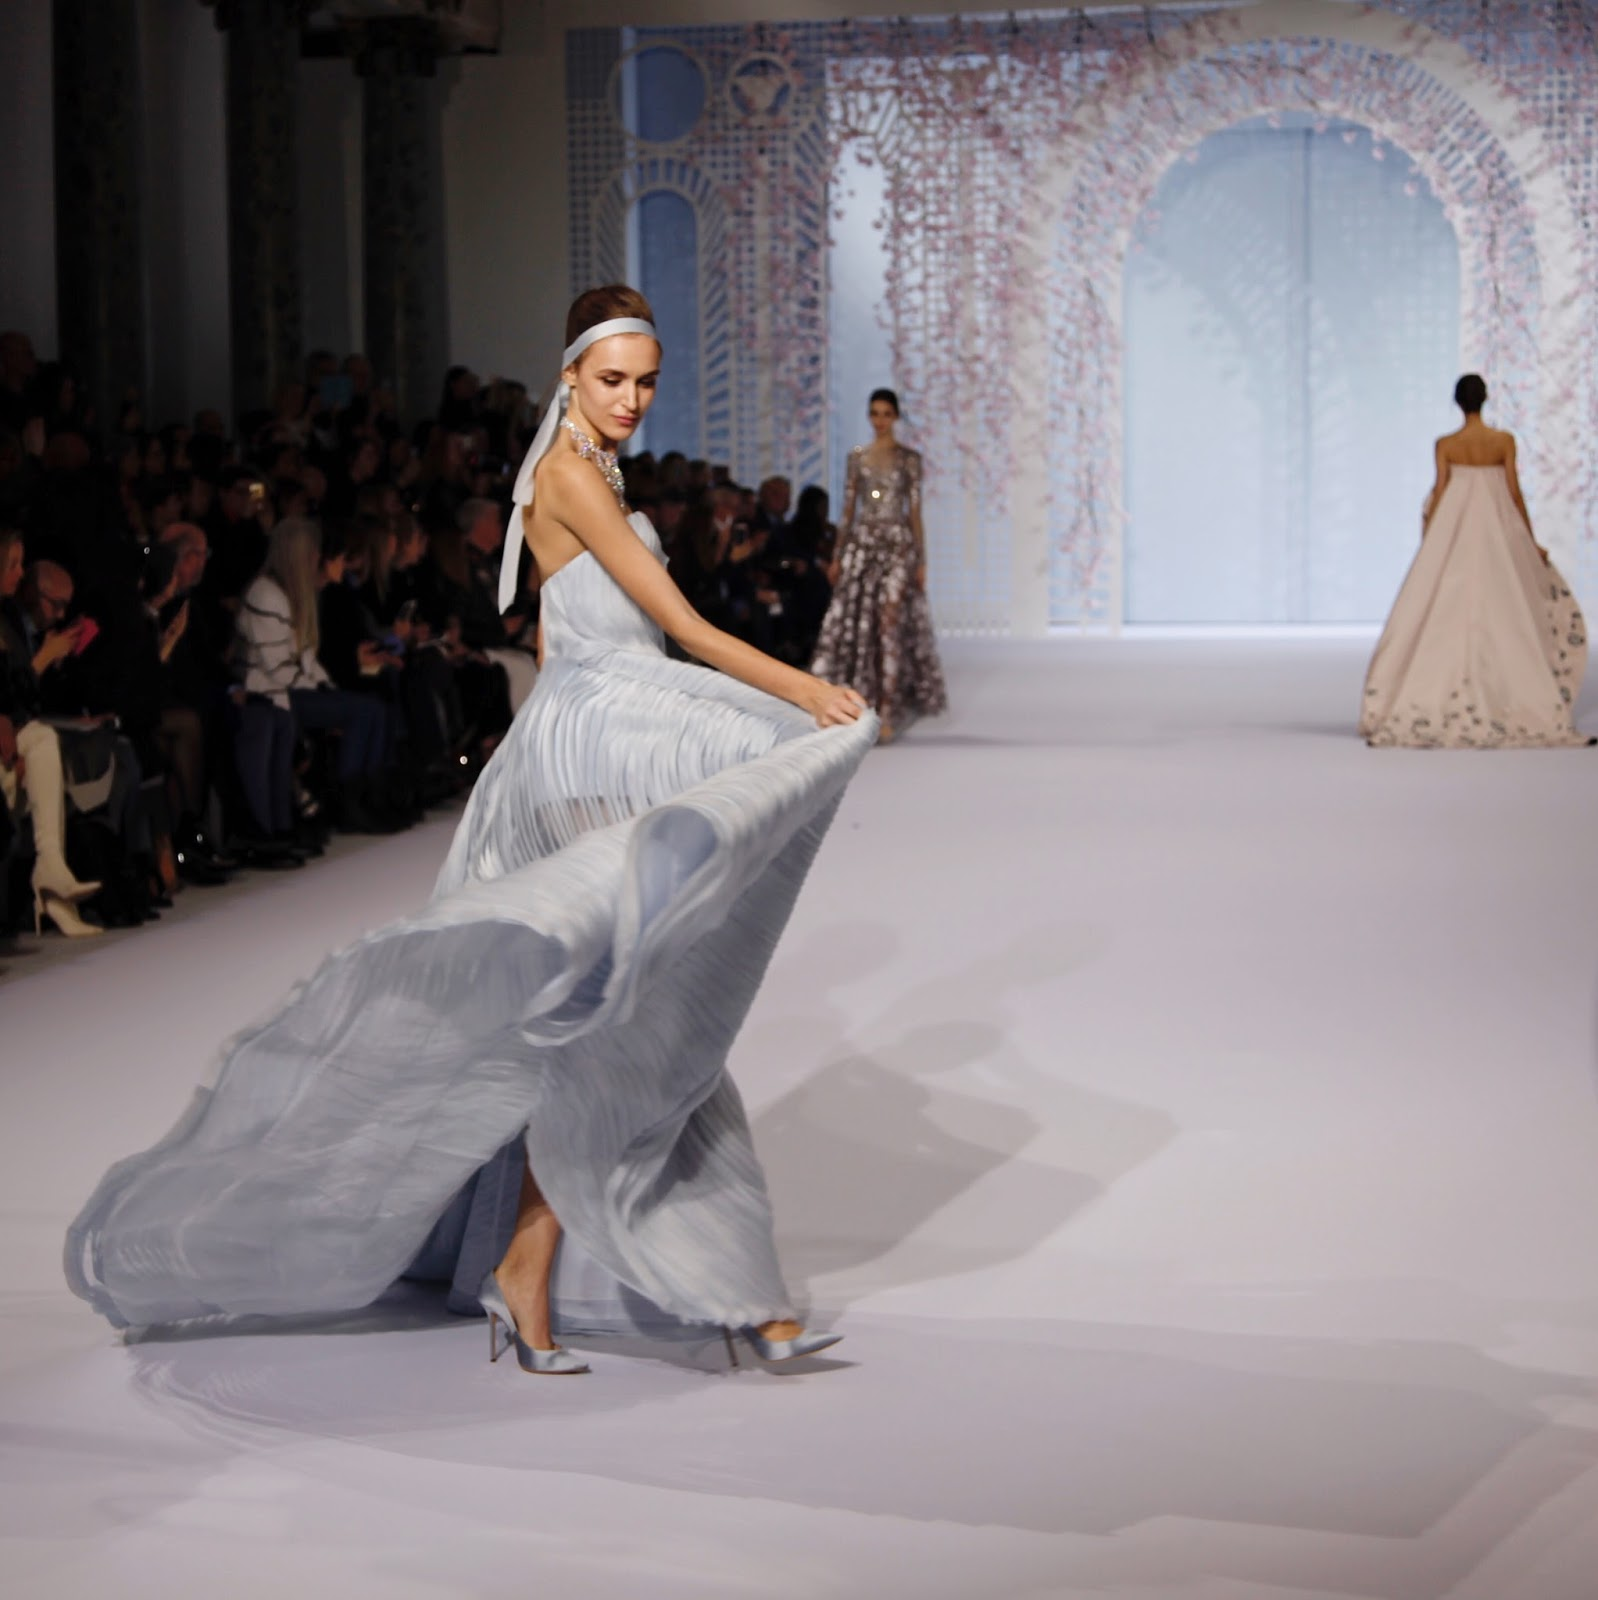 Ralph And Russo Wedding Dresses: RALPH & RUSSO HAUTE COUTURE SPRING/SUMMER 2016